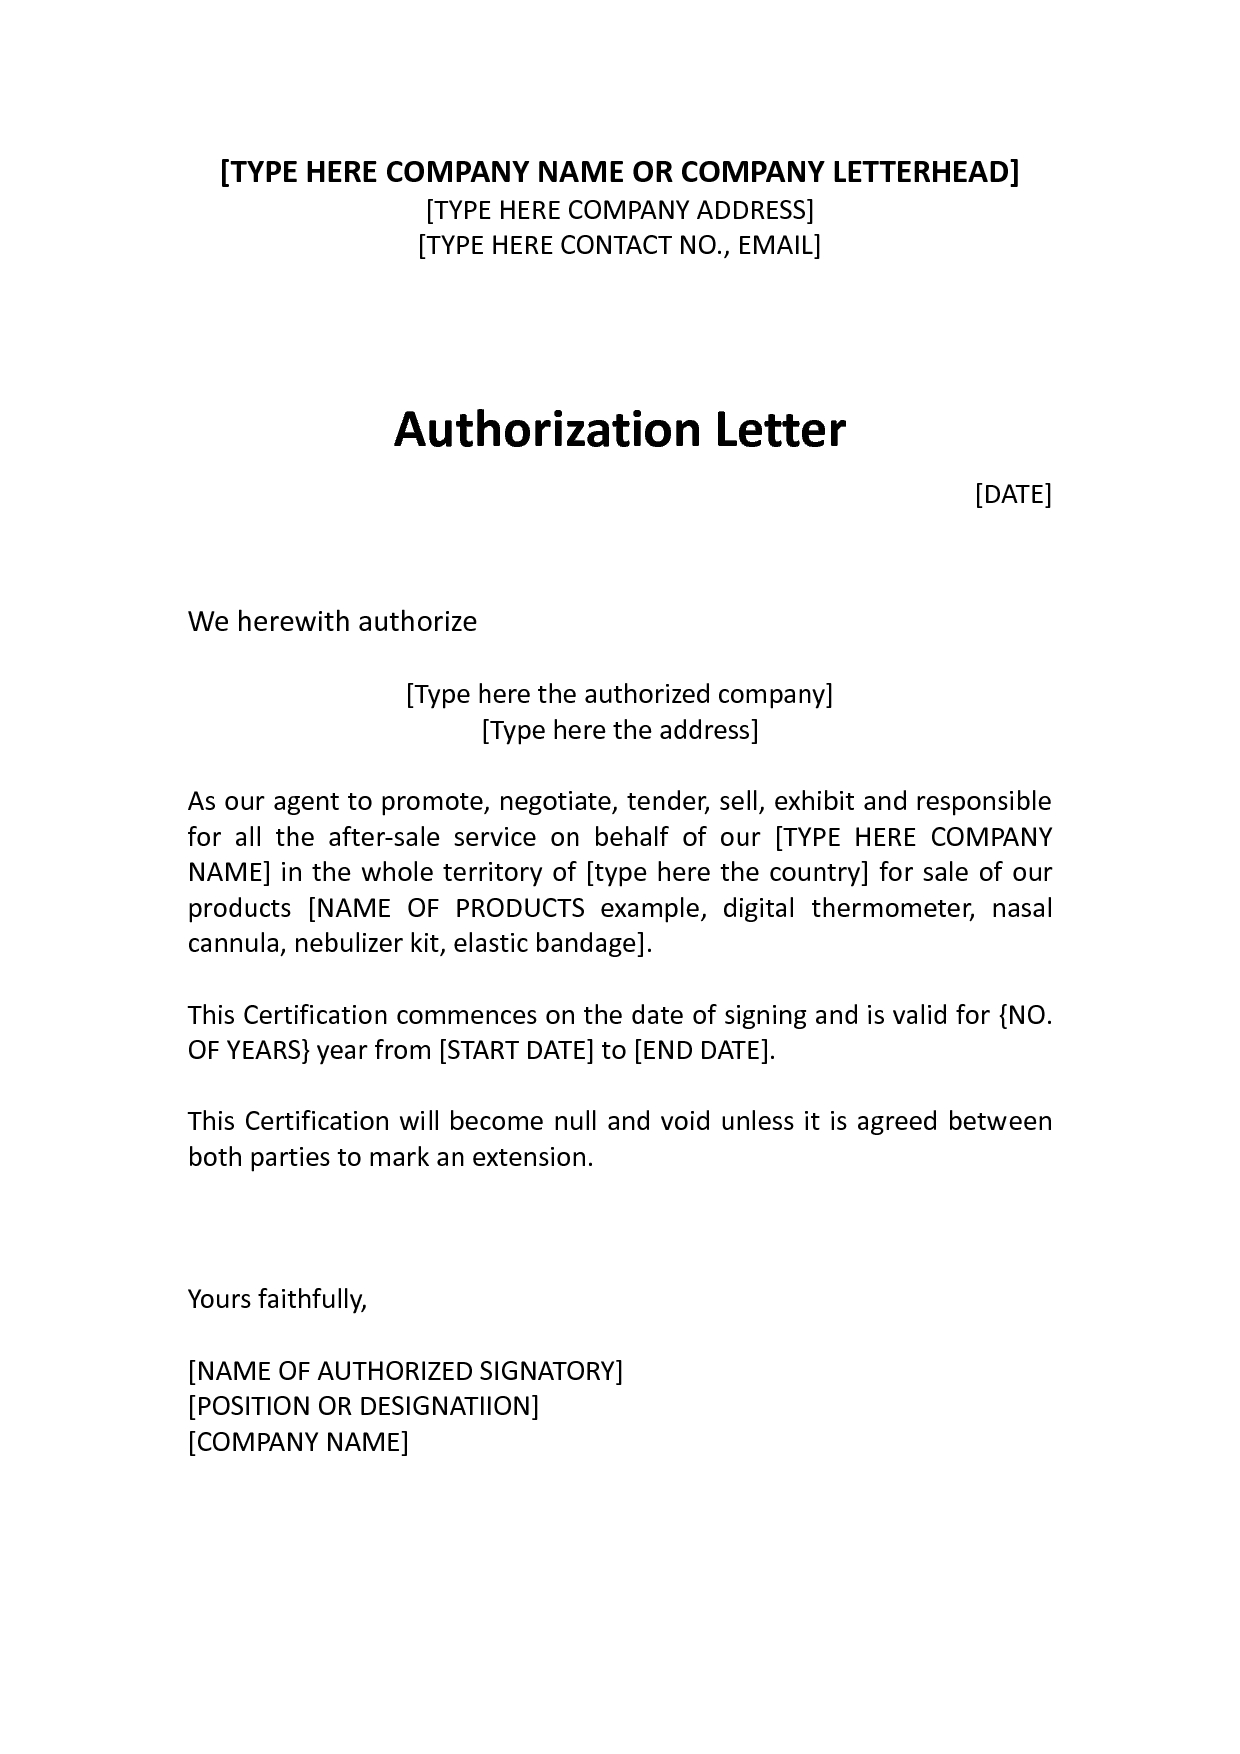 Medical Consent Letter Template - Authorization Distributor Letter Sample Distributor Dealer